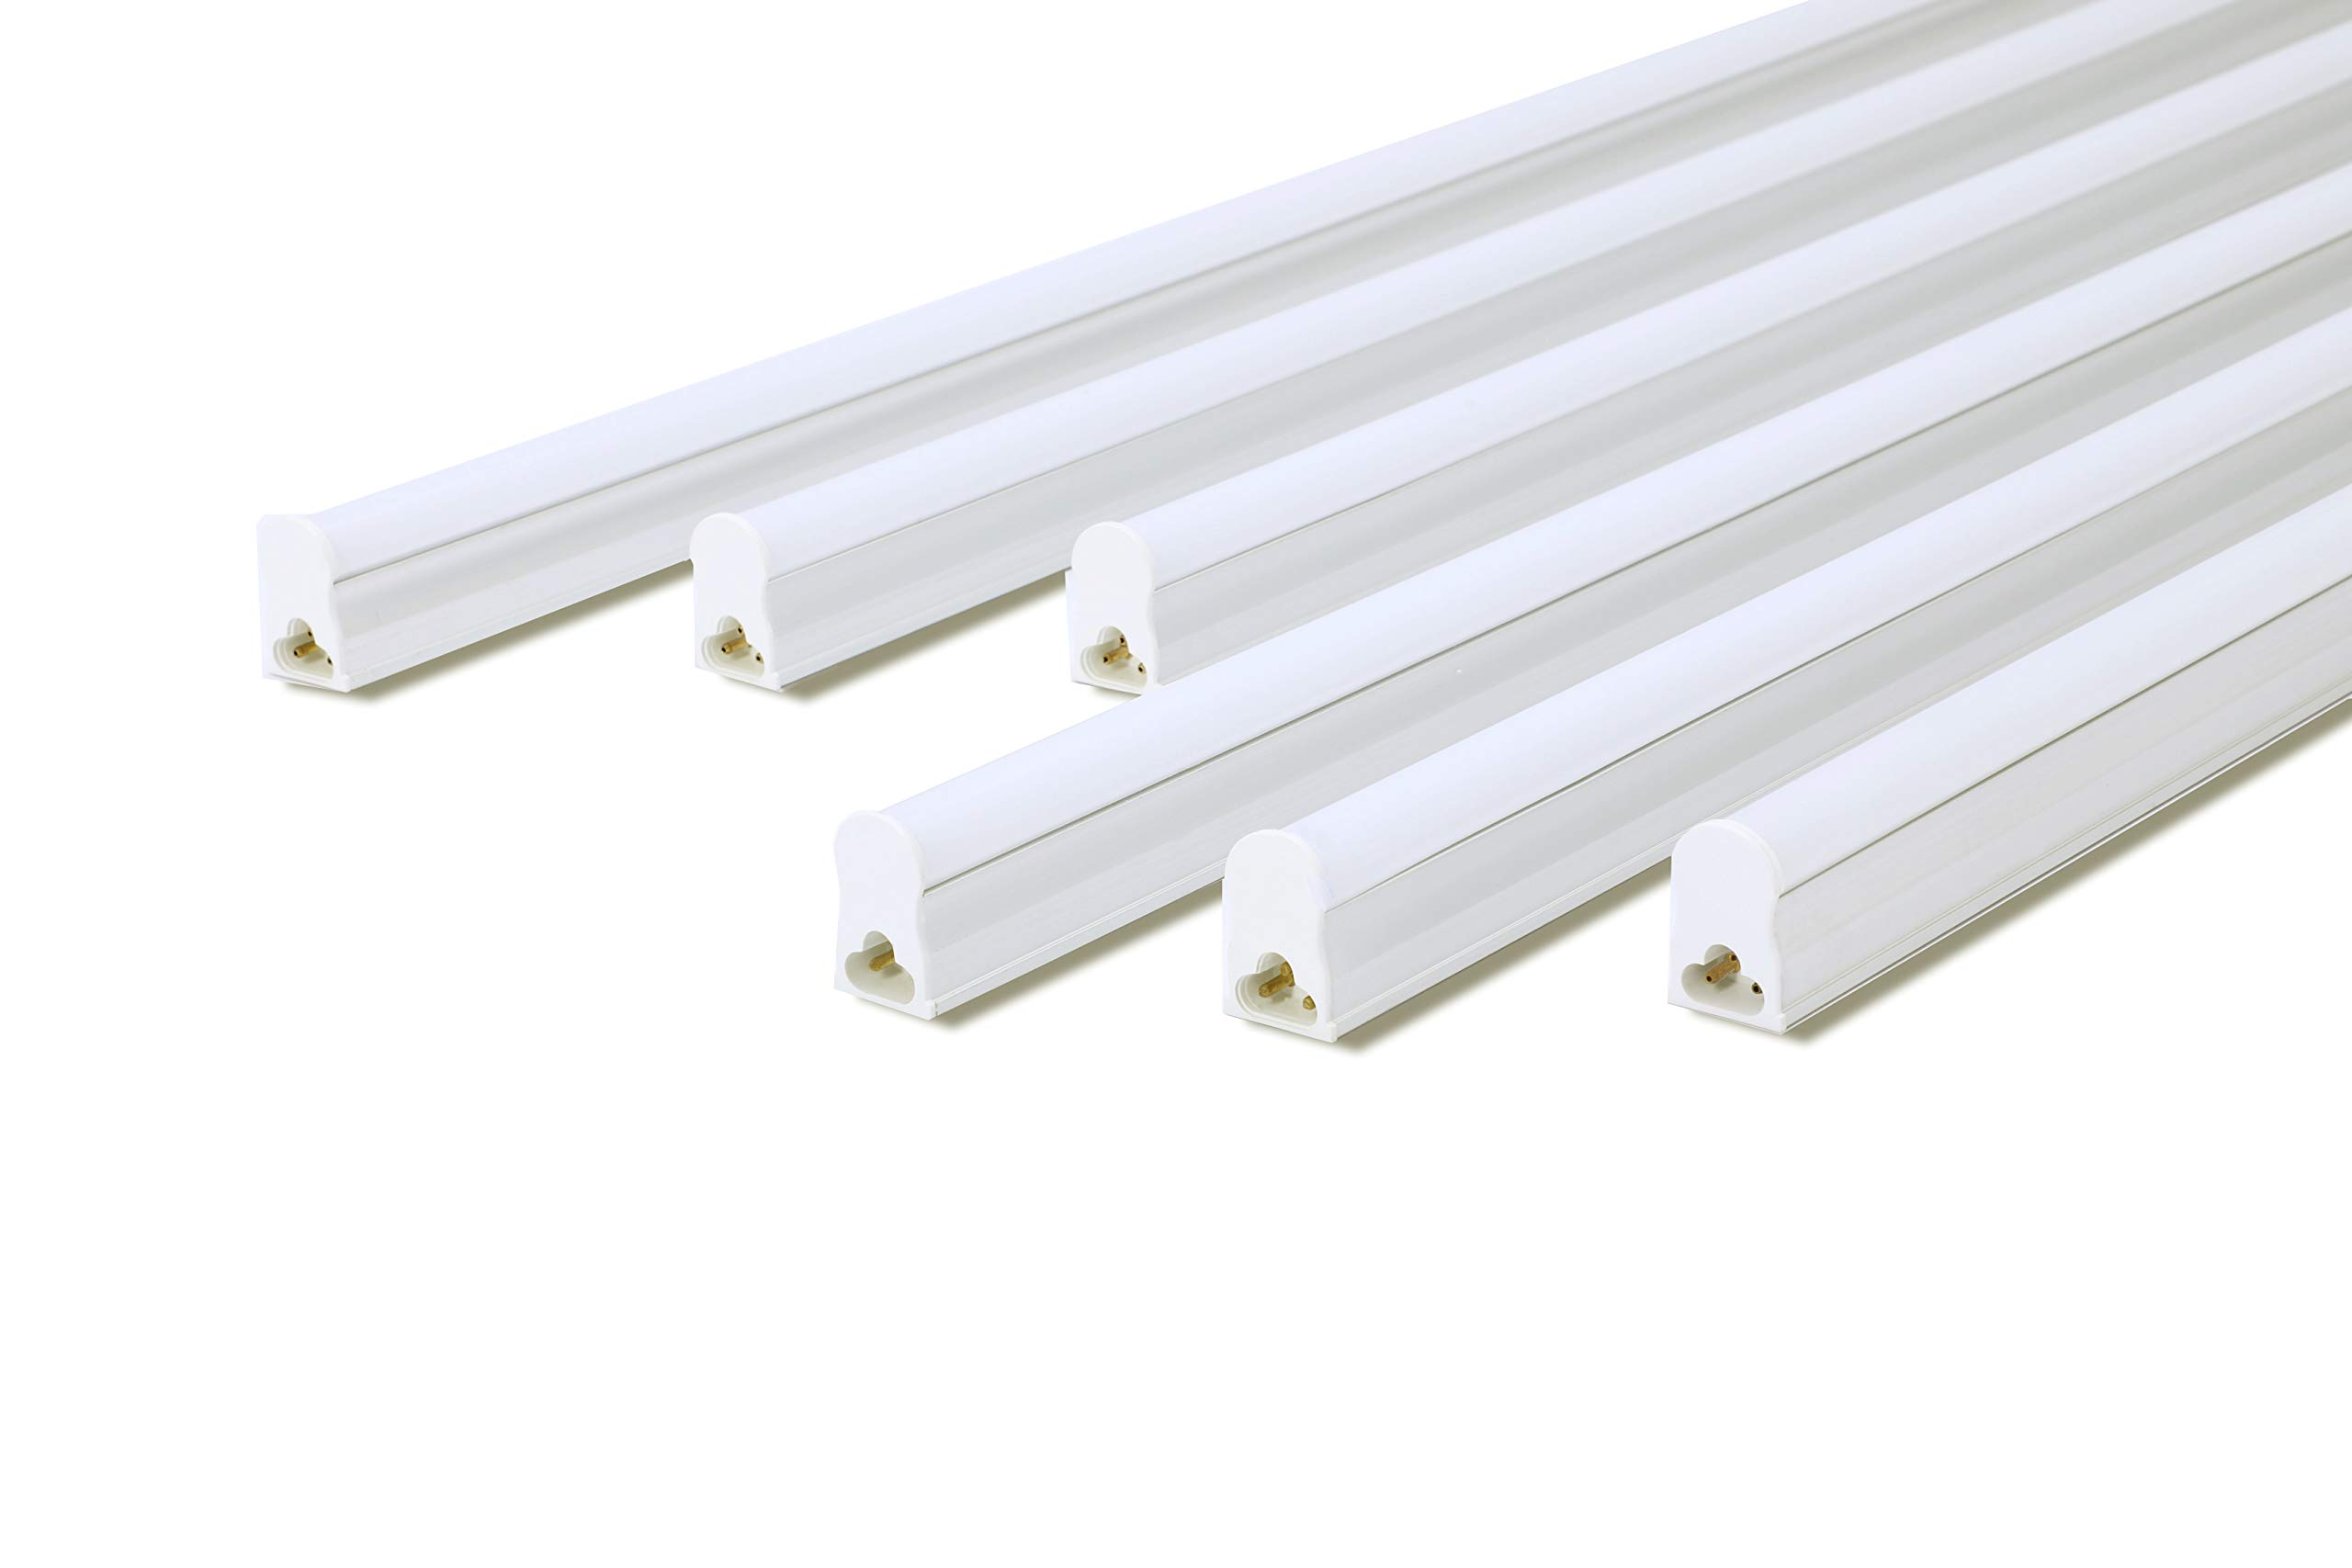 LED T5 Integrated Single Fixture, 4FT 2000LM(Super Bright), 6500K (Cool White), 18W LED Tube Light, 36W Fluorescent Replacement,for Warehouse,Garage, Corded Electric with Built-in ON/OFF Switch,6 Pack